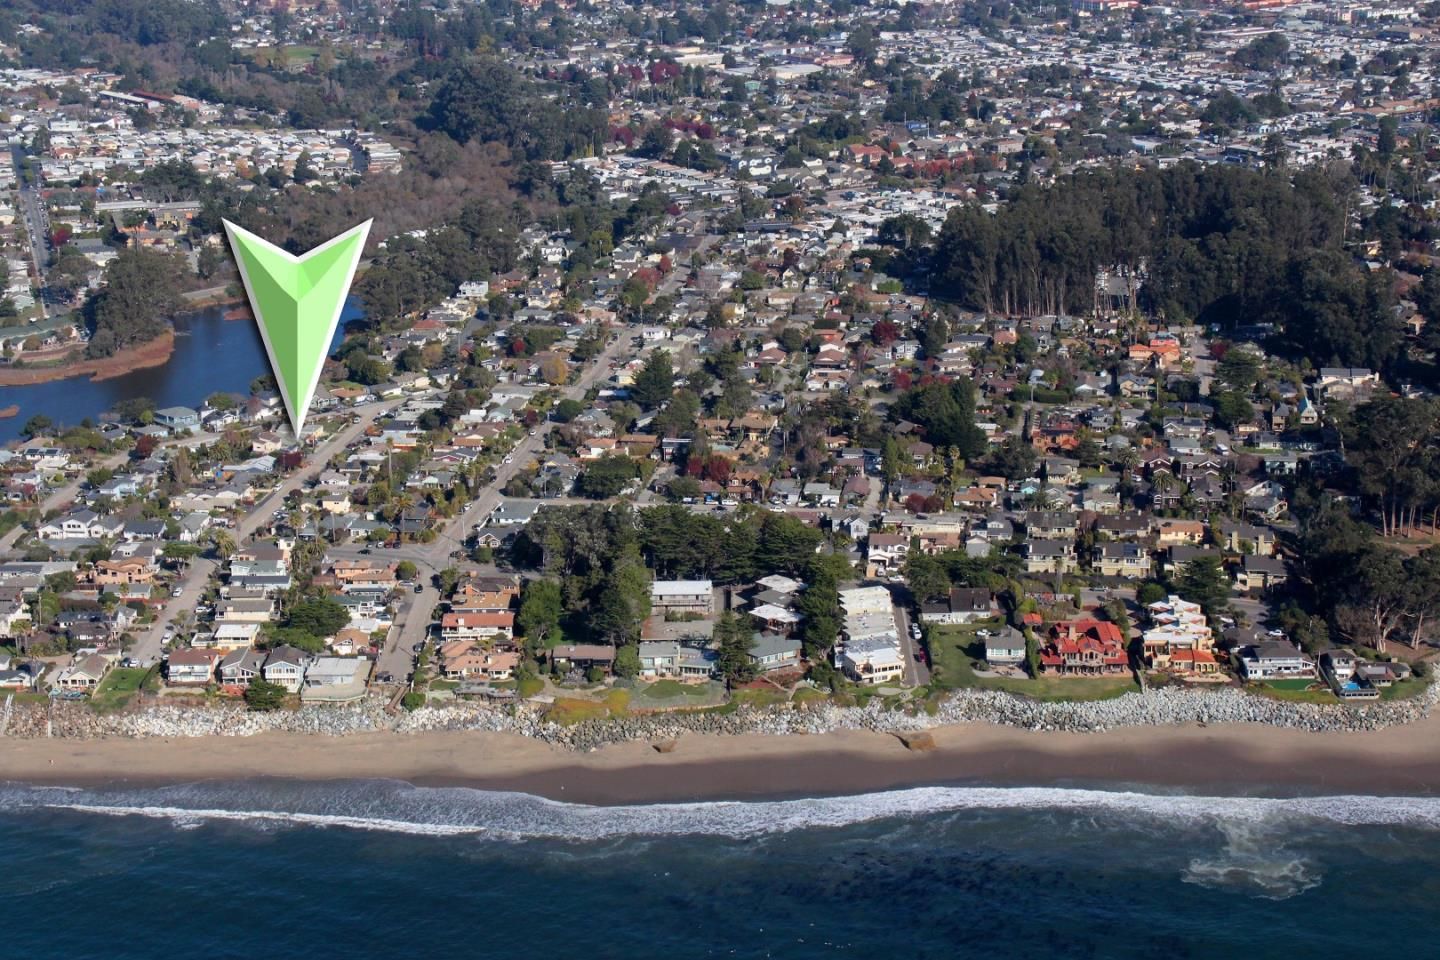 Thunderbird Real Estate specializes in Soquel CA Homes, Real